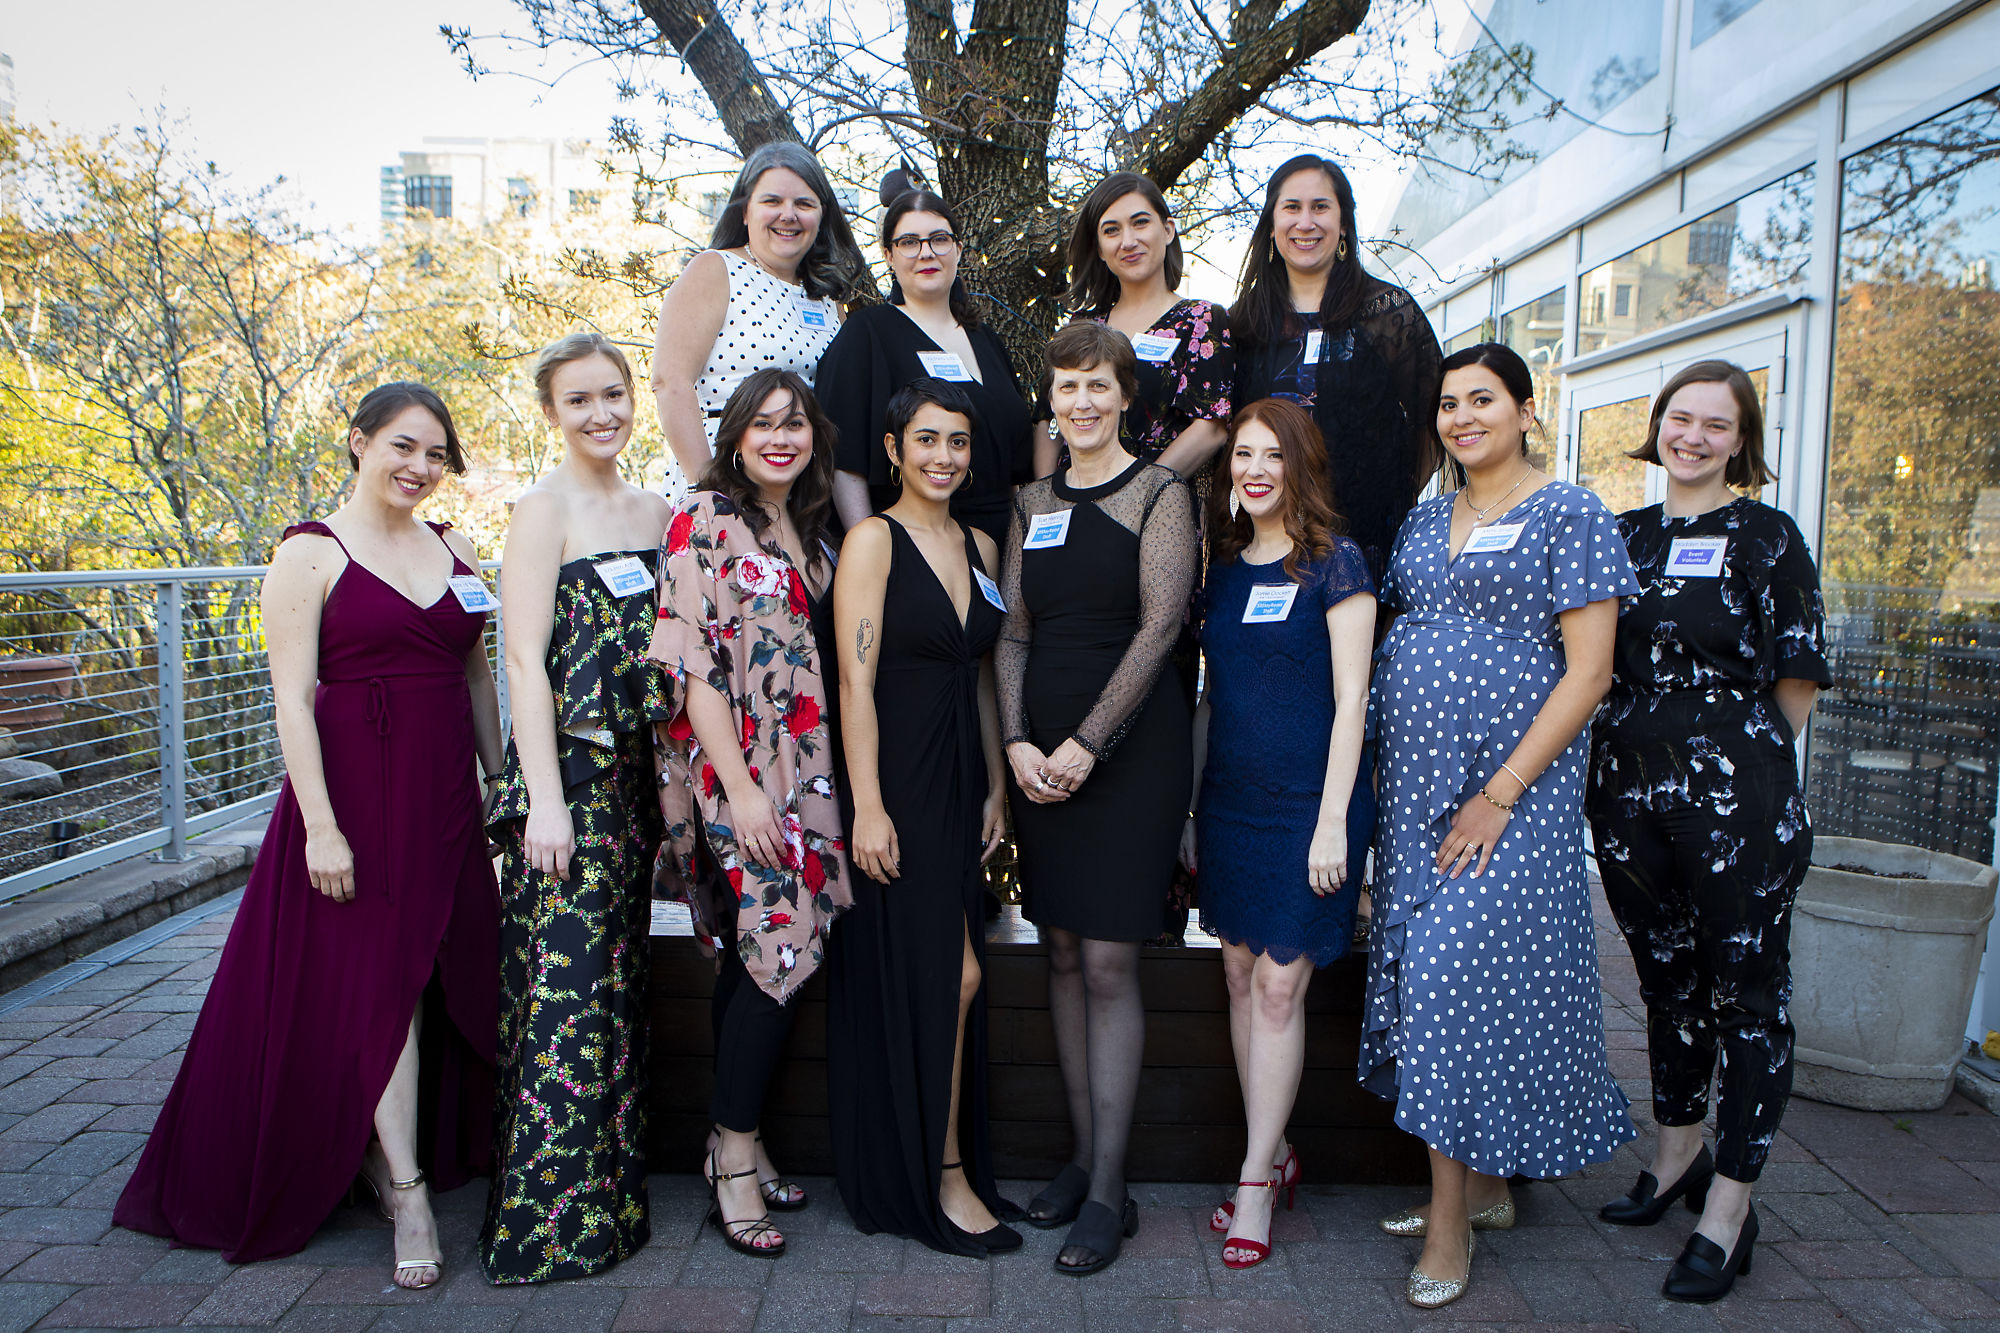 The SitStayRead Staff at Bark 'n Ball 2019. From left to right: (Top) Mara O'Brien, Victoria Luisi, Sarah Mylan, Emily Shayman. (Bottom) Kate McIlvain, Lauren Ash, Joan Figarella, Mimi Rosales, Sue Hiering, Jamie Crockett, Mimi Singh, and Madalyn Brooker   (   Crimson Cat Studios   )